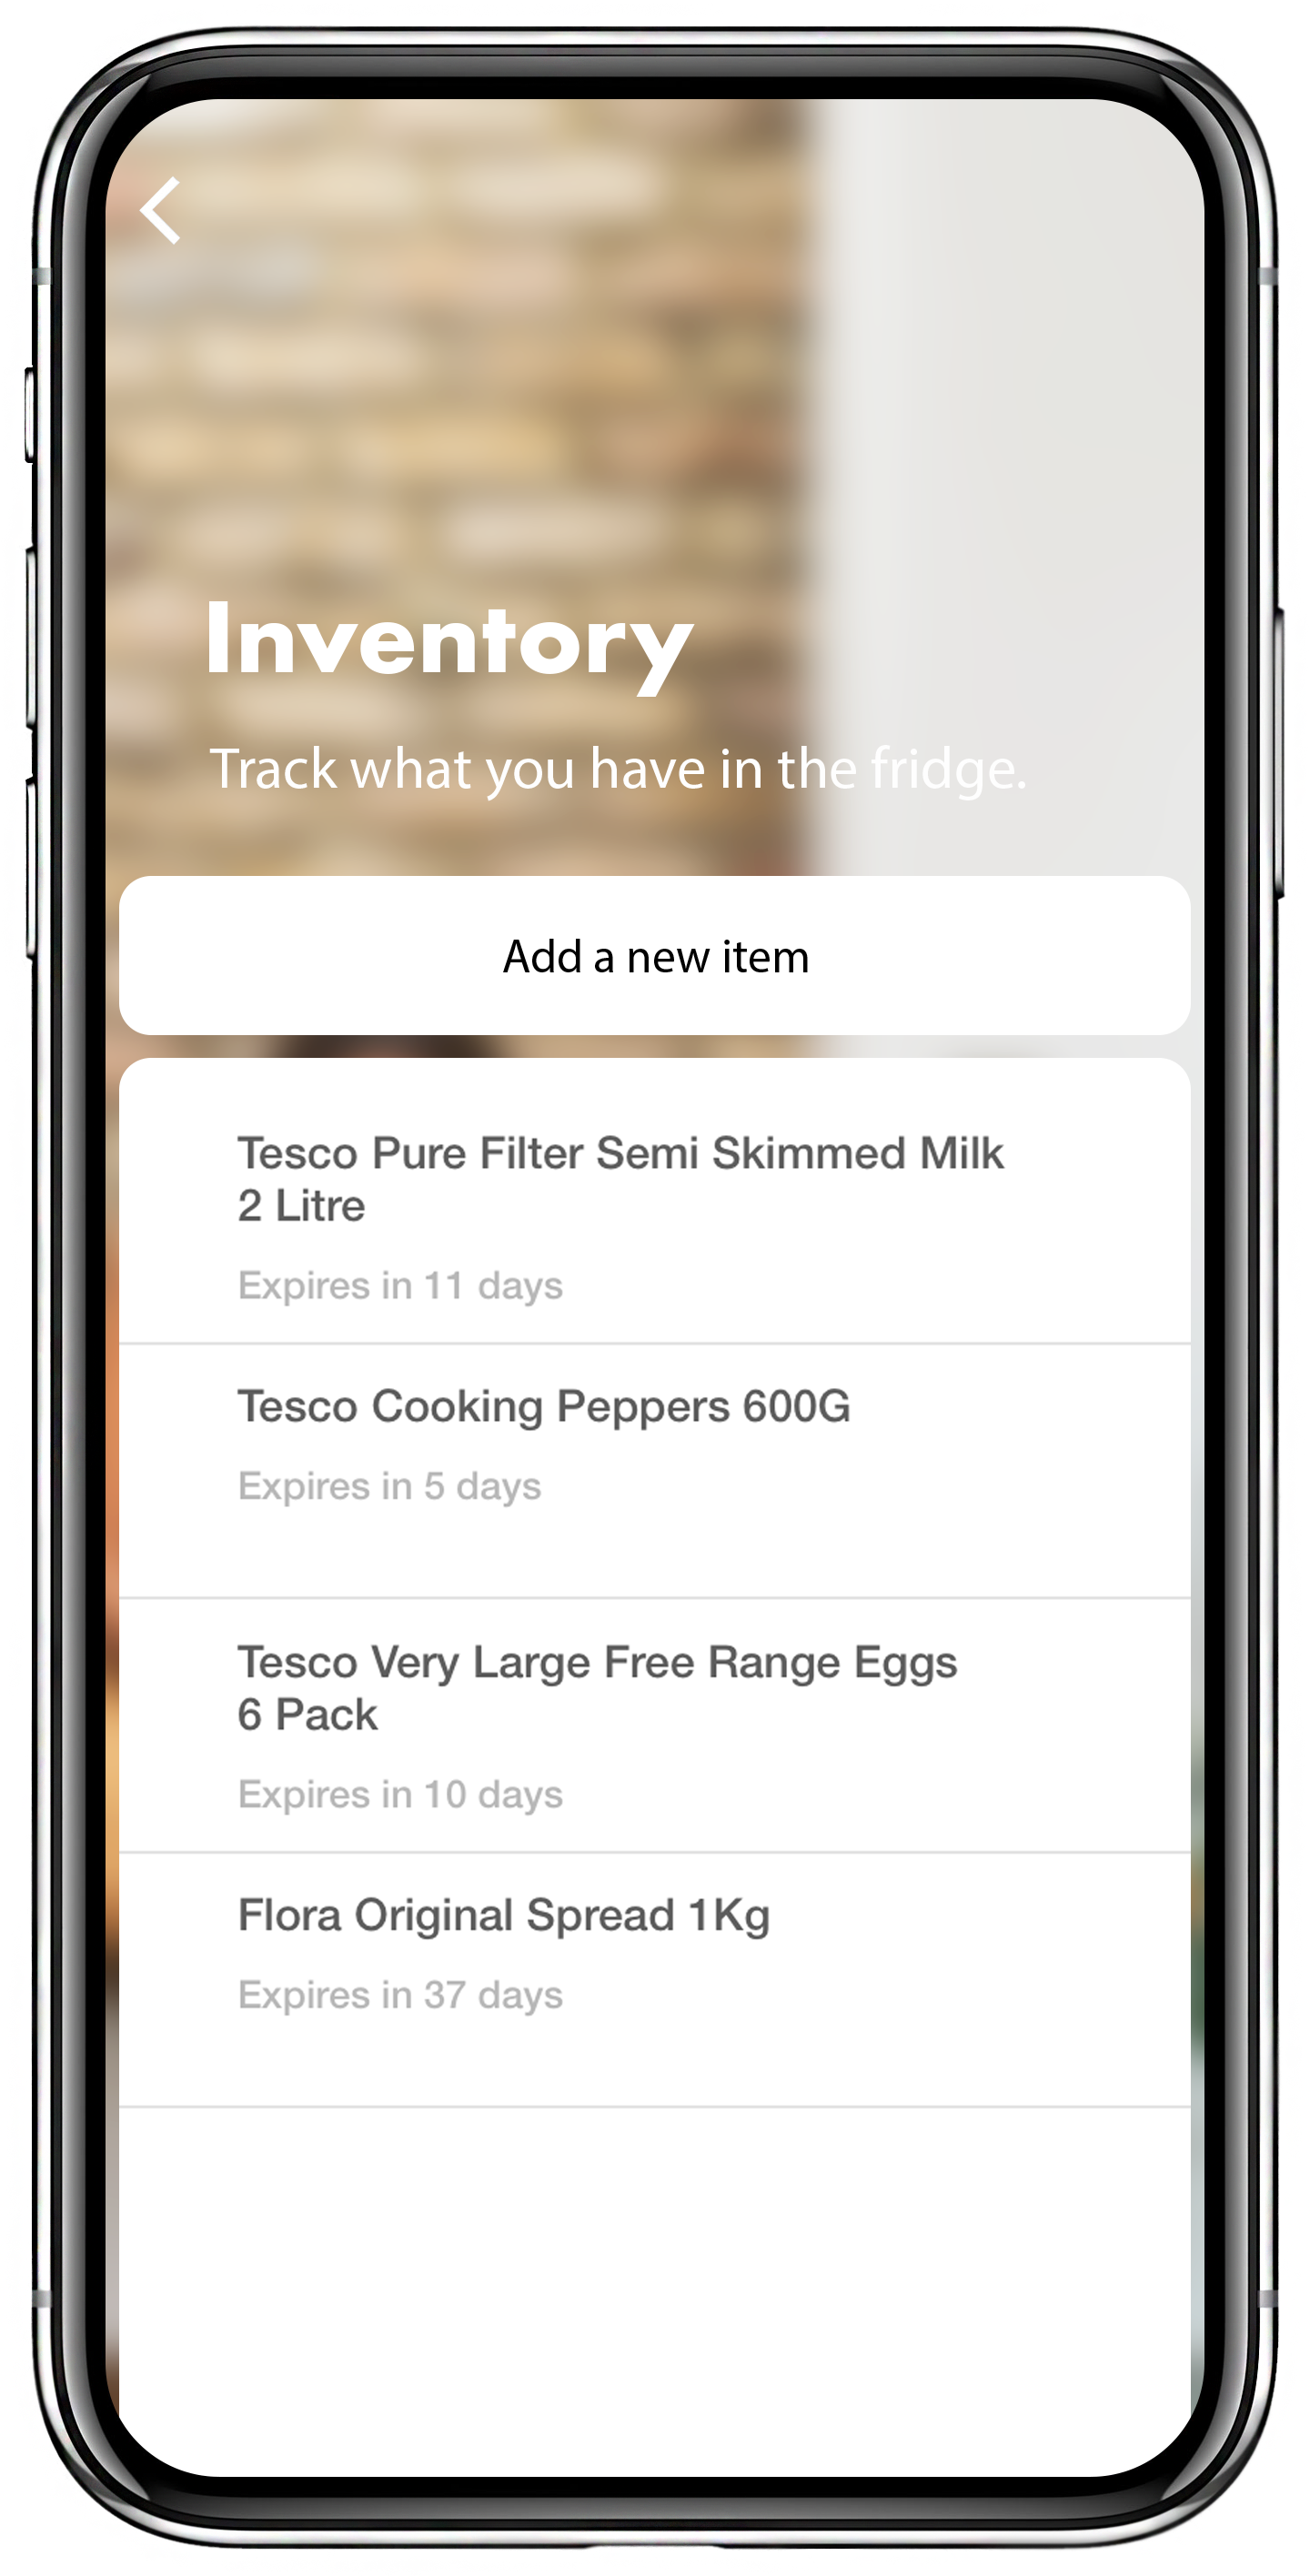 iPhoneX_inventory-screenshot.png